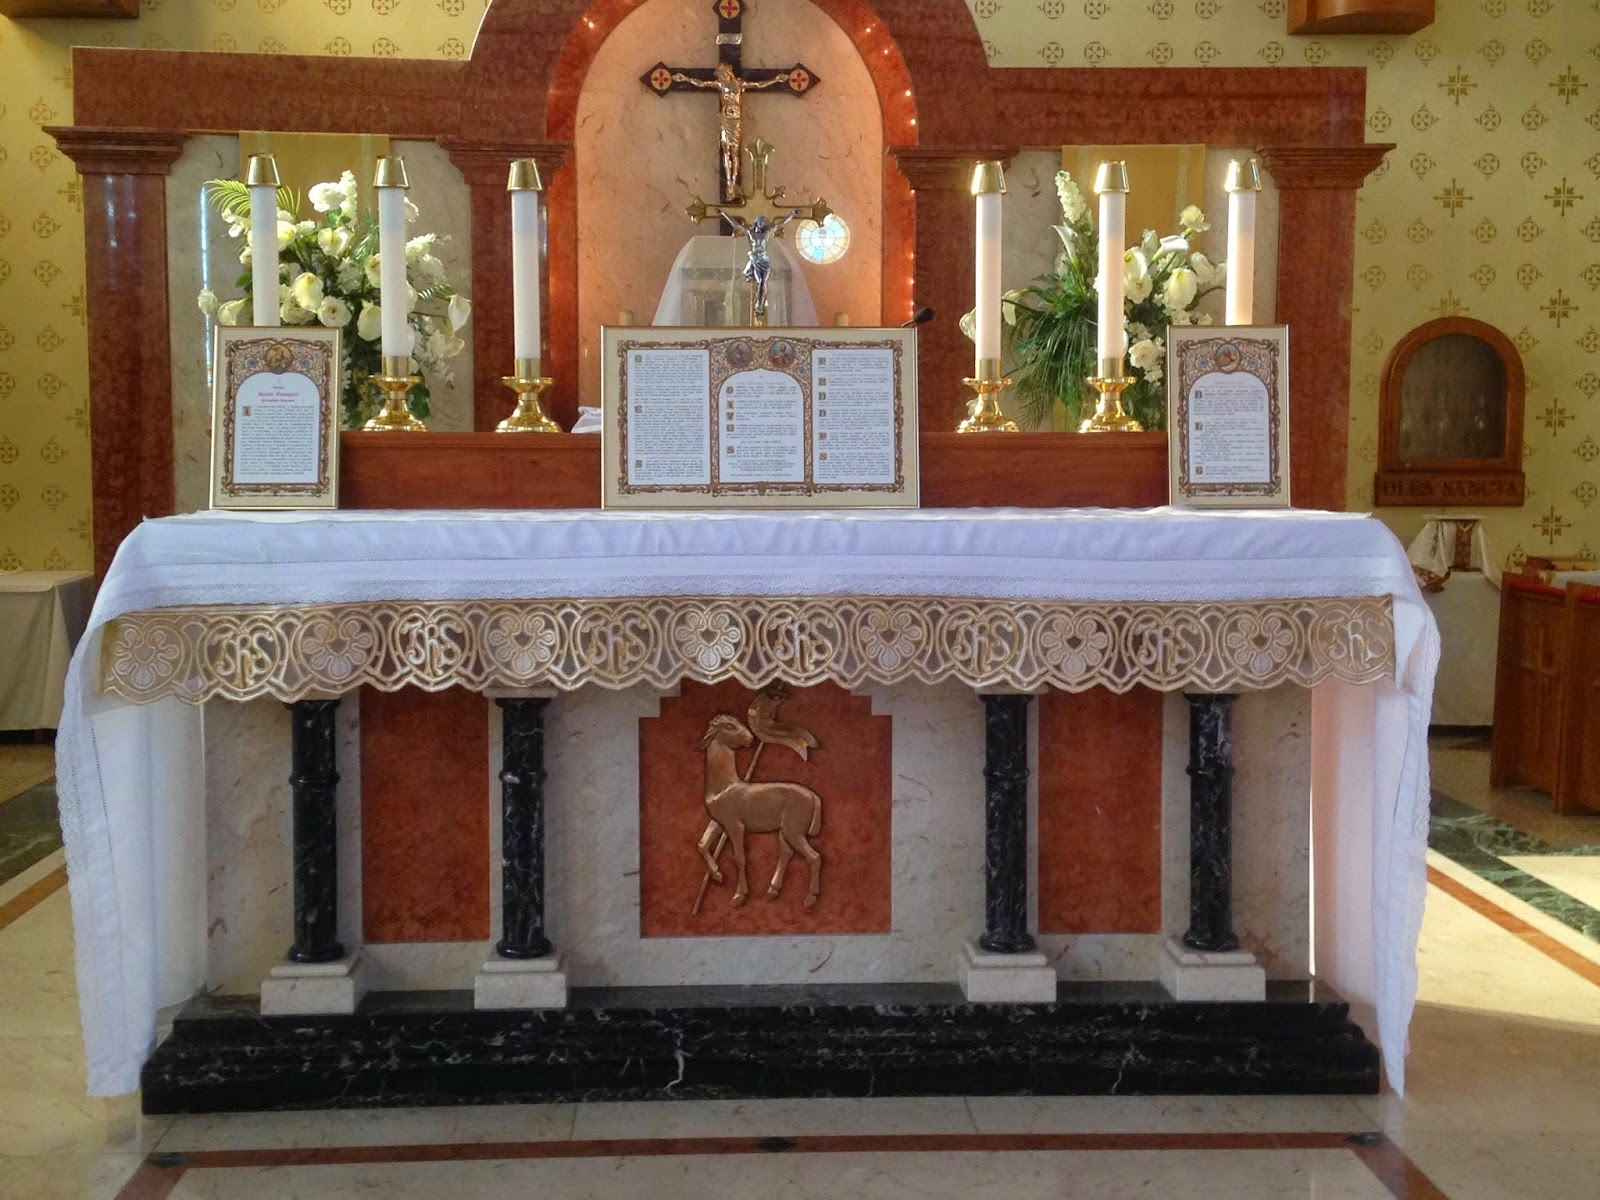 The Radical Catholic: The Altar and its Furnishings